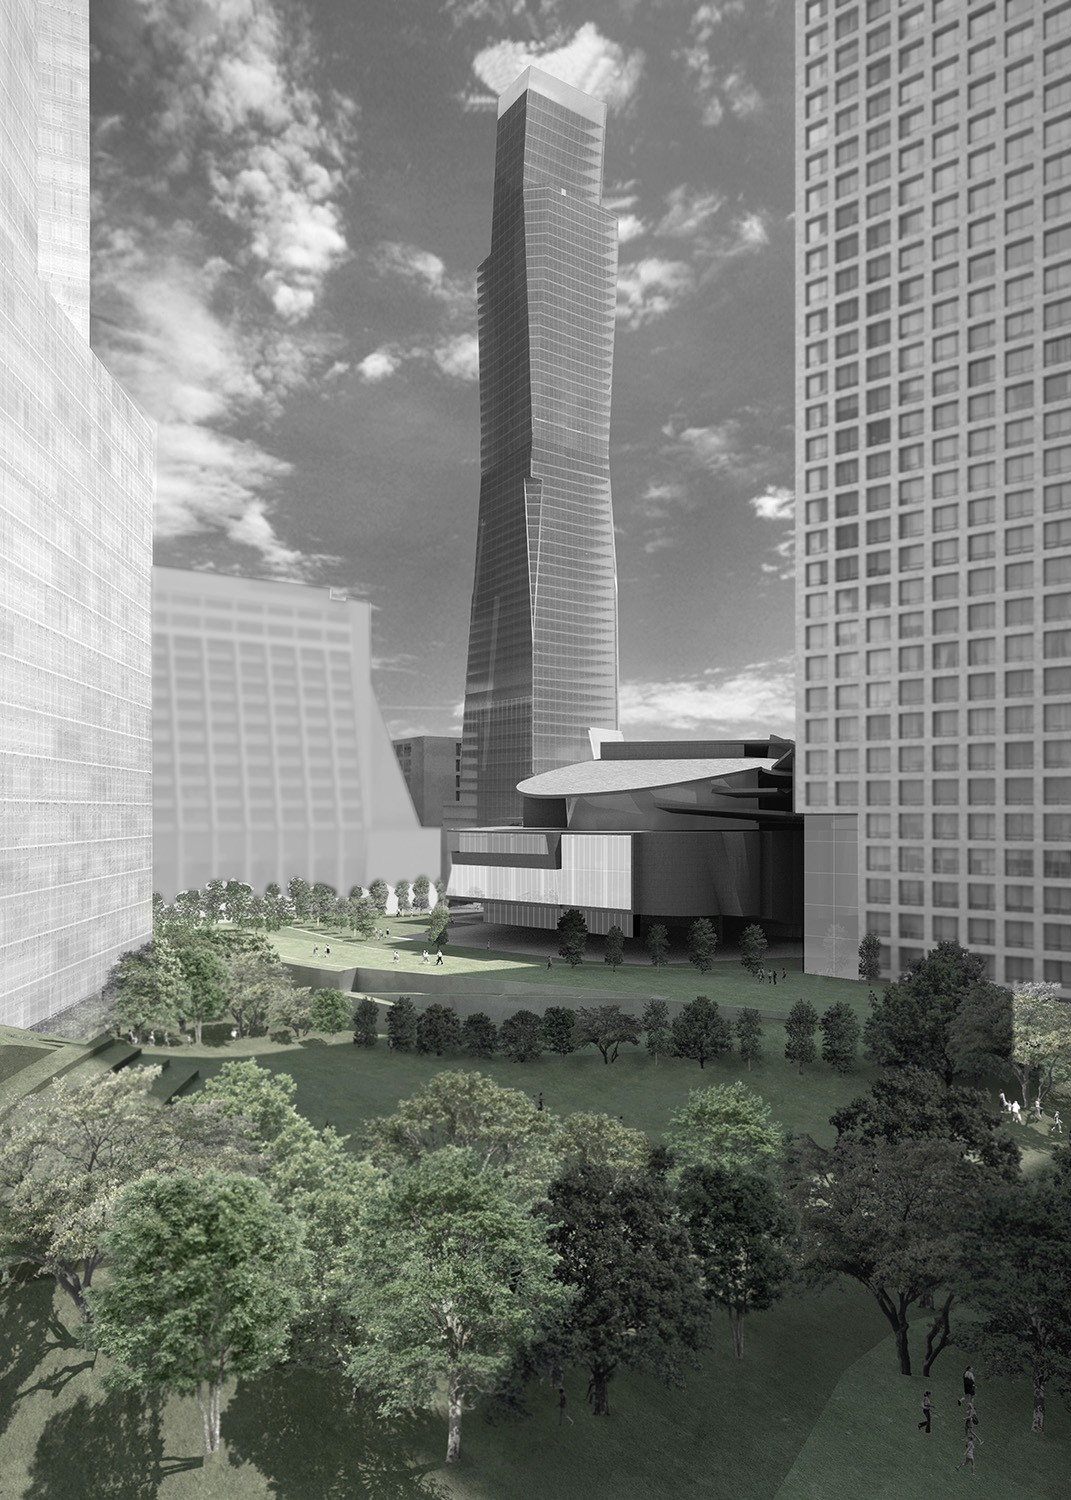 https://stevenholl.sfo2.digitaloceanspaces.com/uploads/projects/project-images/StevenHollArchitects_HudsonYards_M-2_WV.jpg